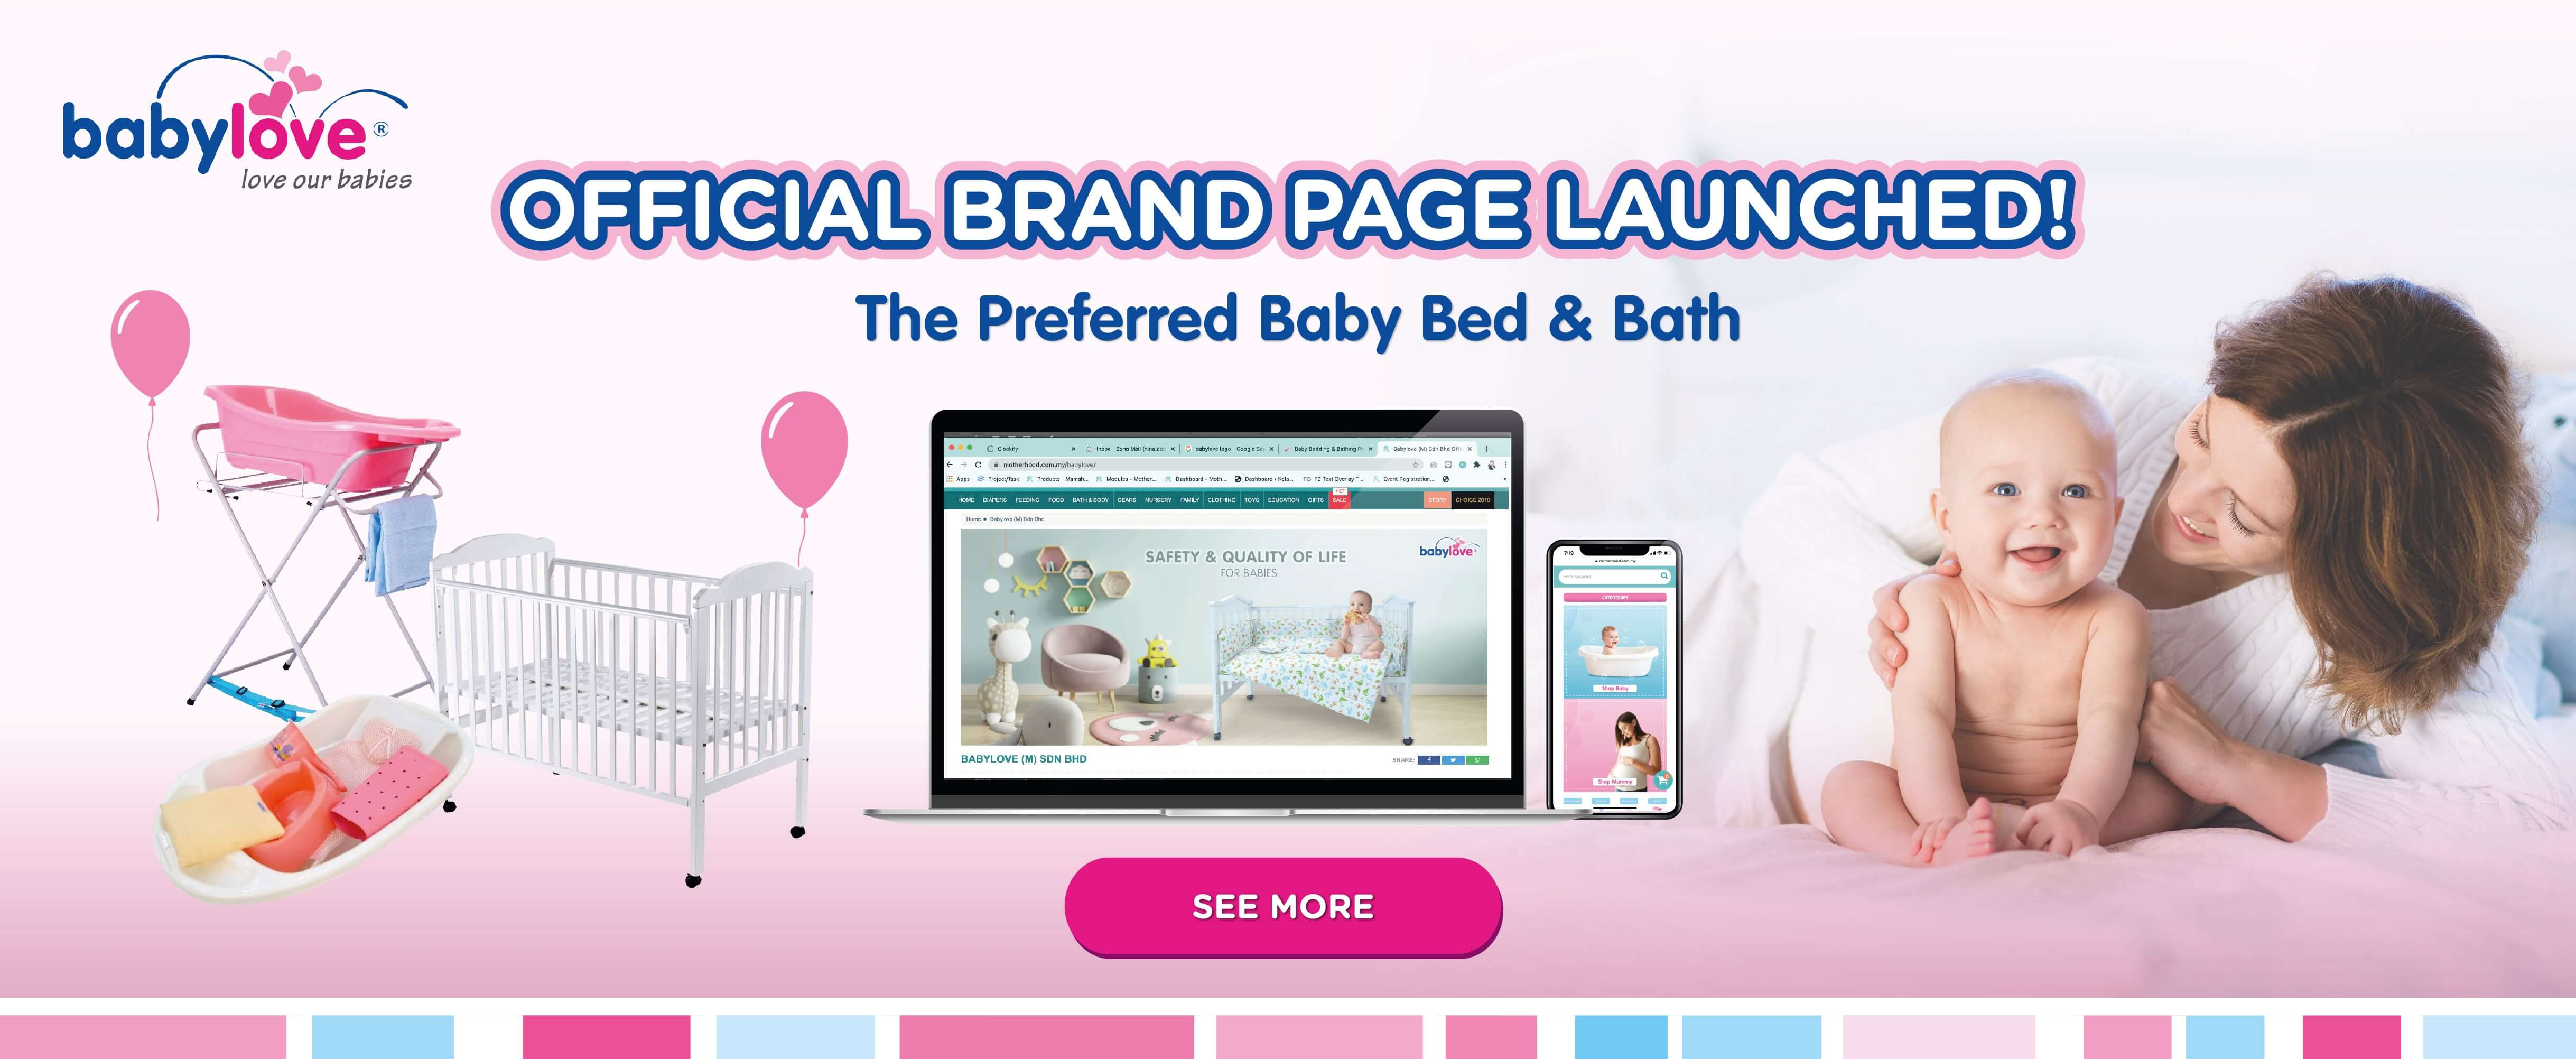 Babylove Official Brand Page Launched